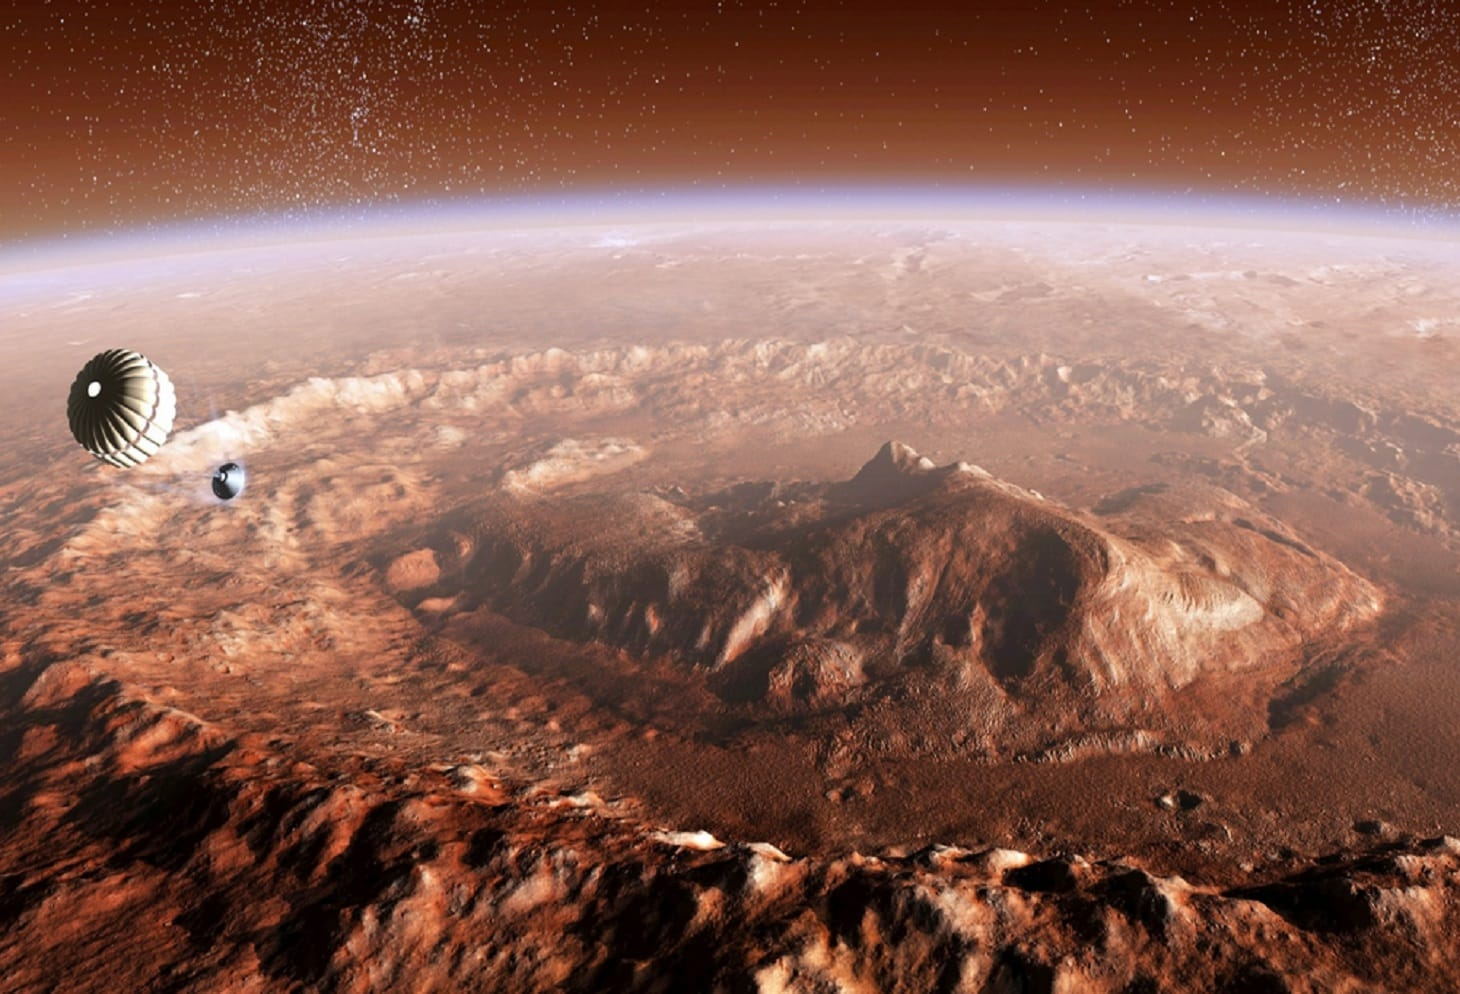 Learn about planet Mars atmosphere water supply and the possibility to support life plus findings from the Mars exploration rover mission